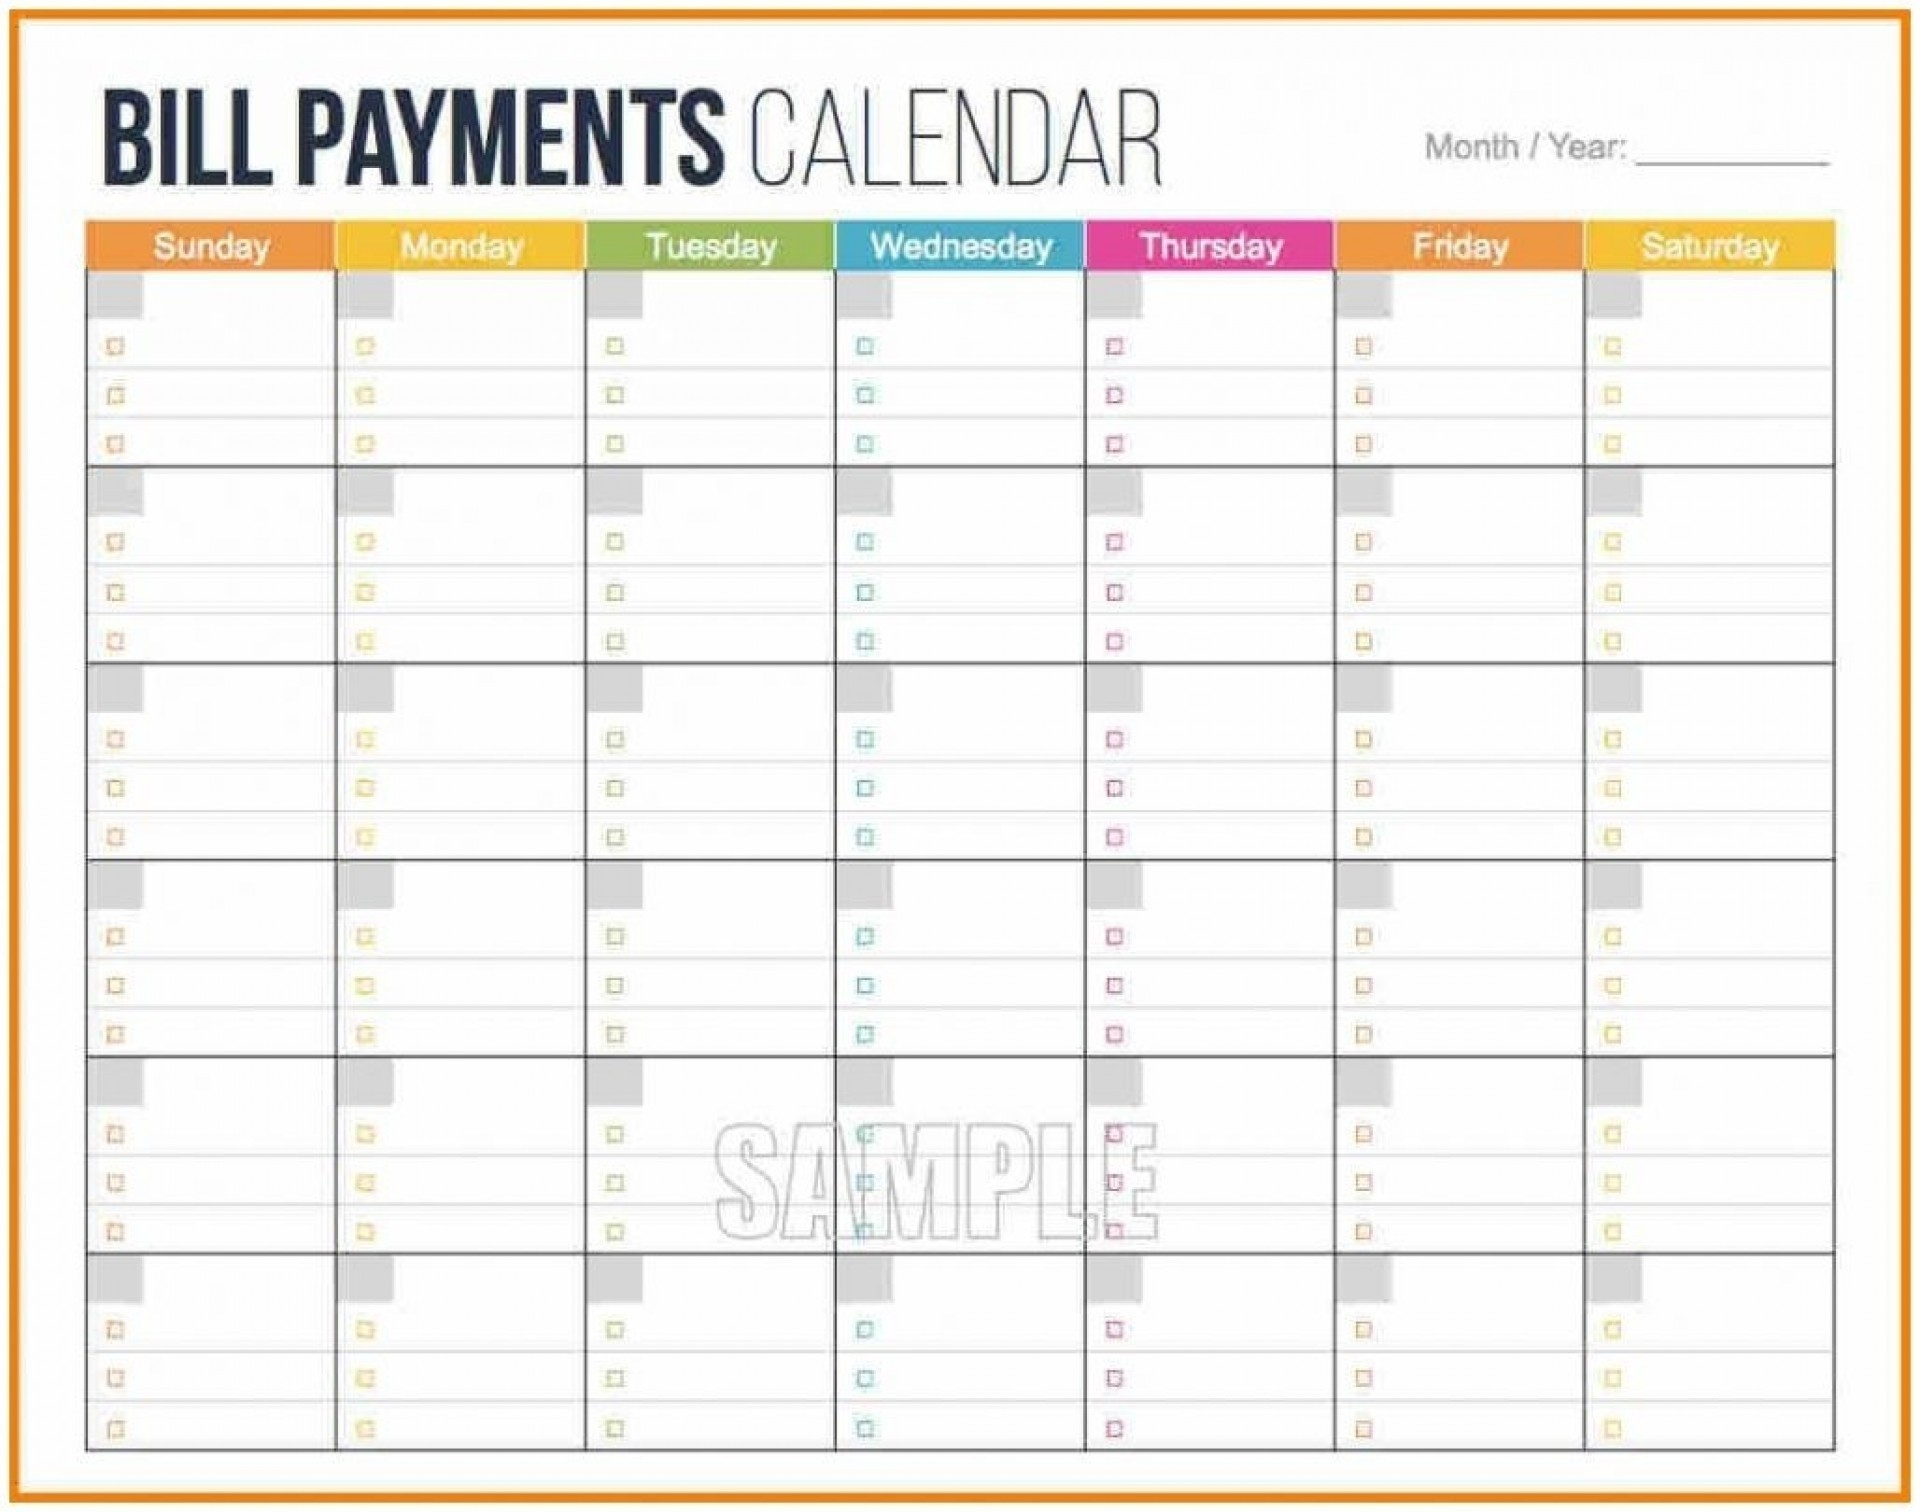 003 Bill Pay Calendar Template Ideas Paying Free Printable-Printable Bill Calendar 2020 Monthly